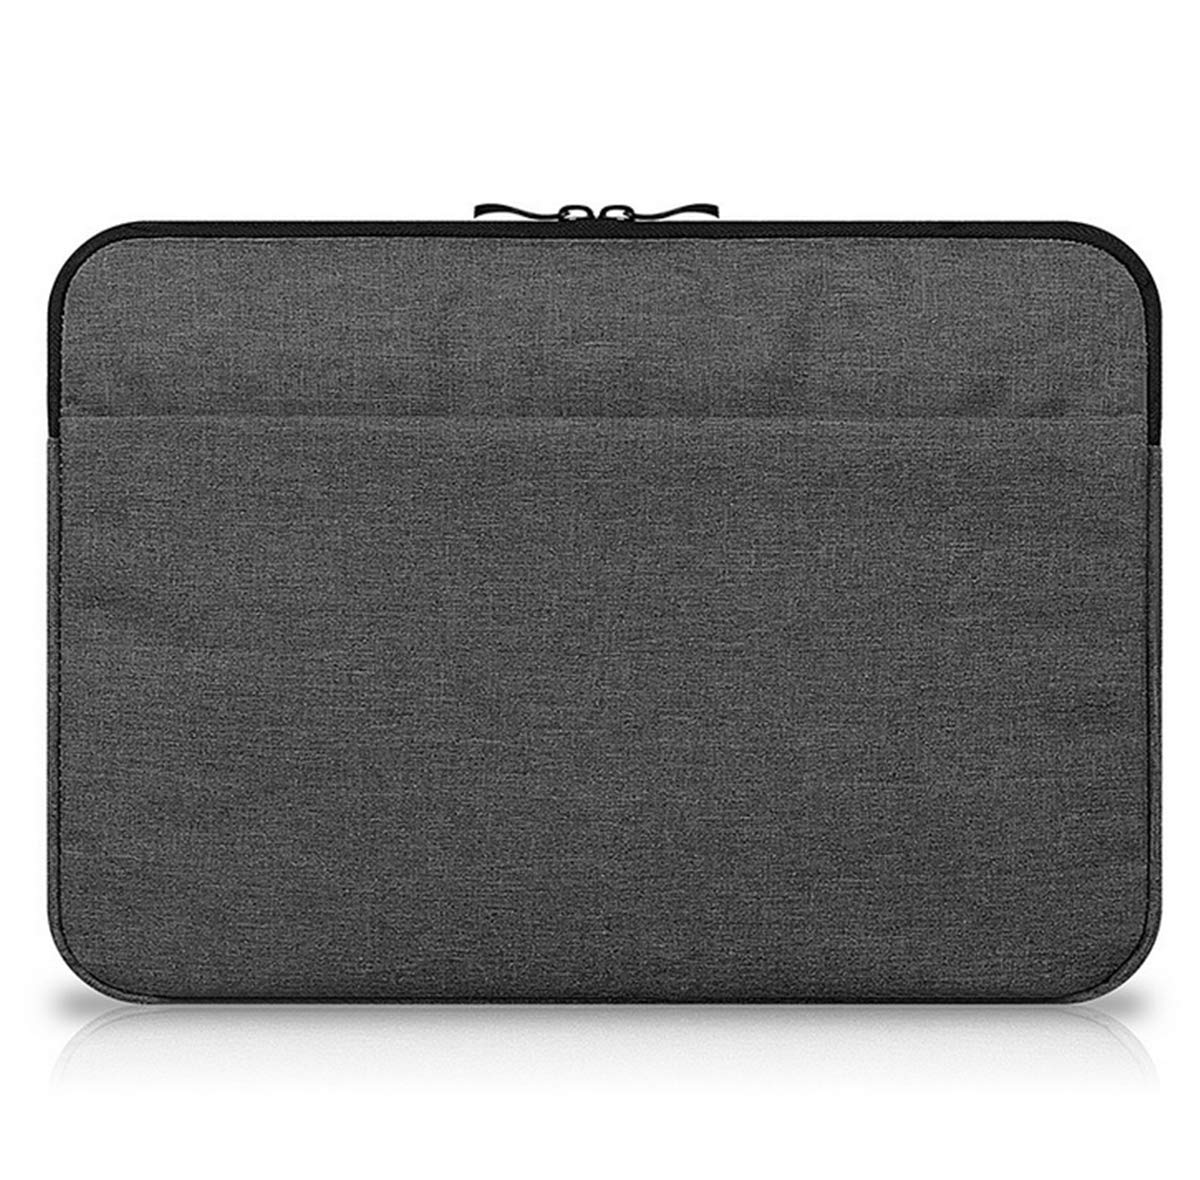 ShiQiMa Waterproof Laptop Sleeve Thicken Protective Case Bag with Pocket - 360 Degree Protective for MacBook Air and MacBook Pro (13''/13.3'', Black)